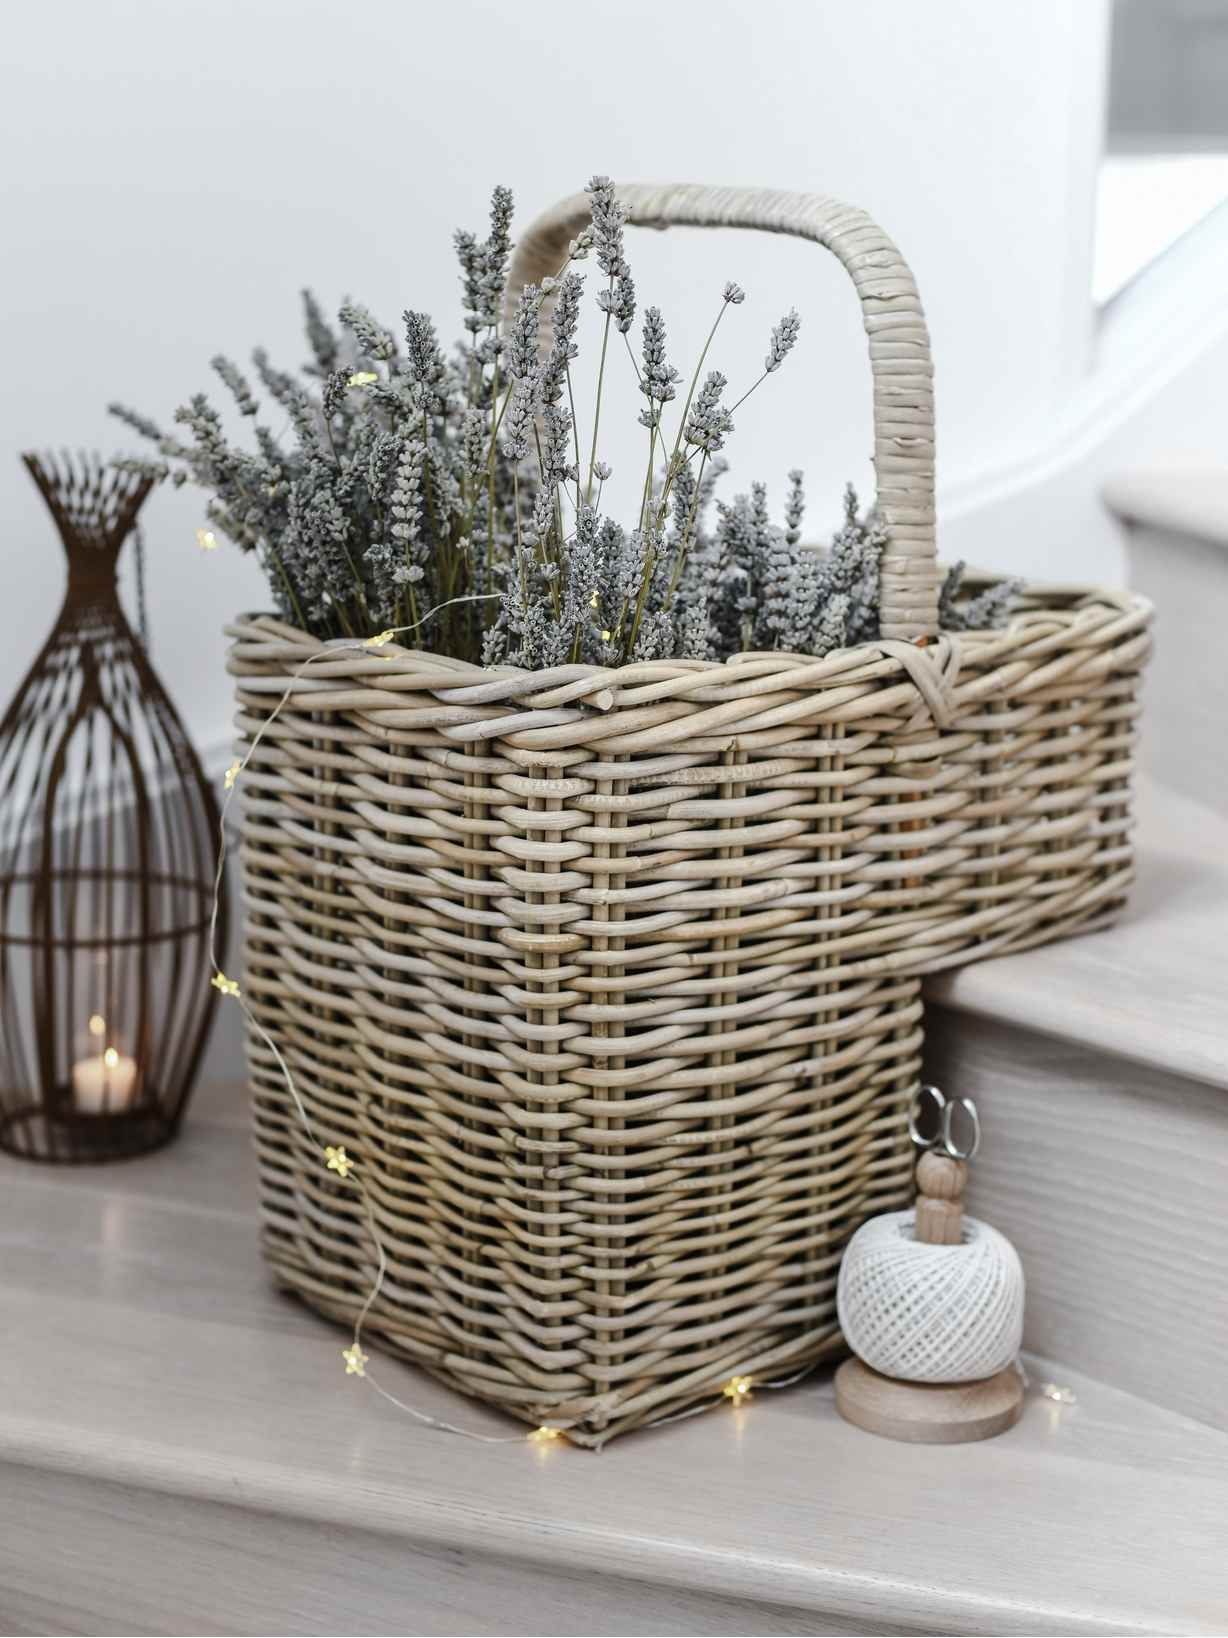 Nordic House Stair Basket with Hoop Handle